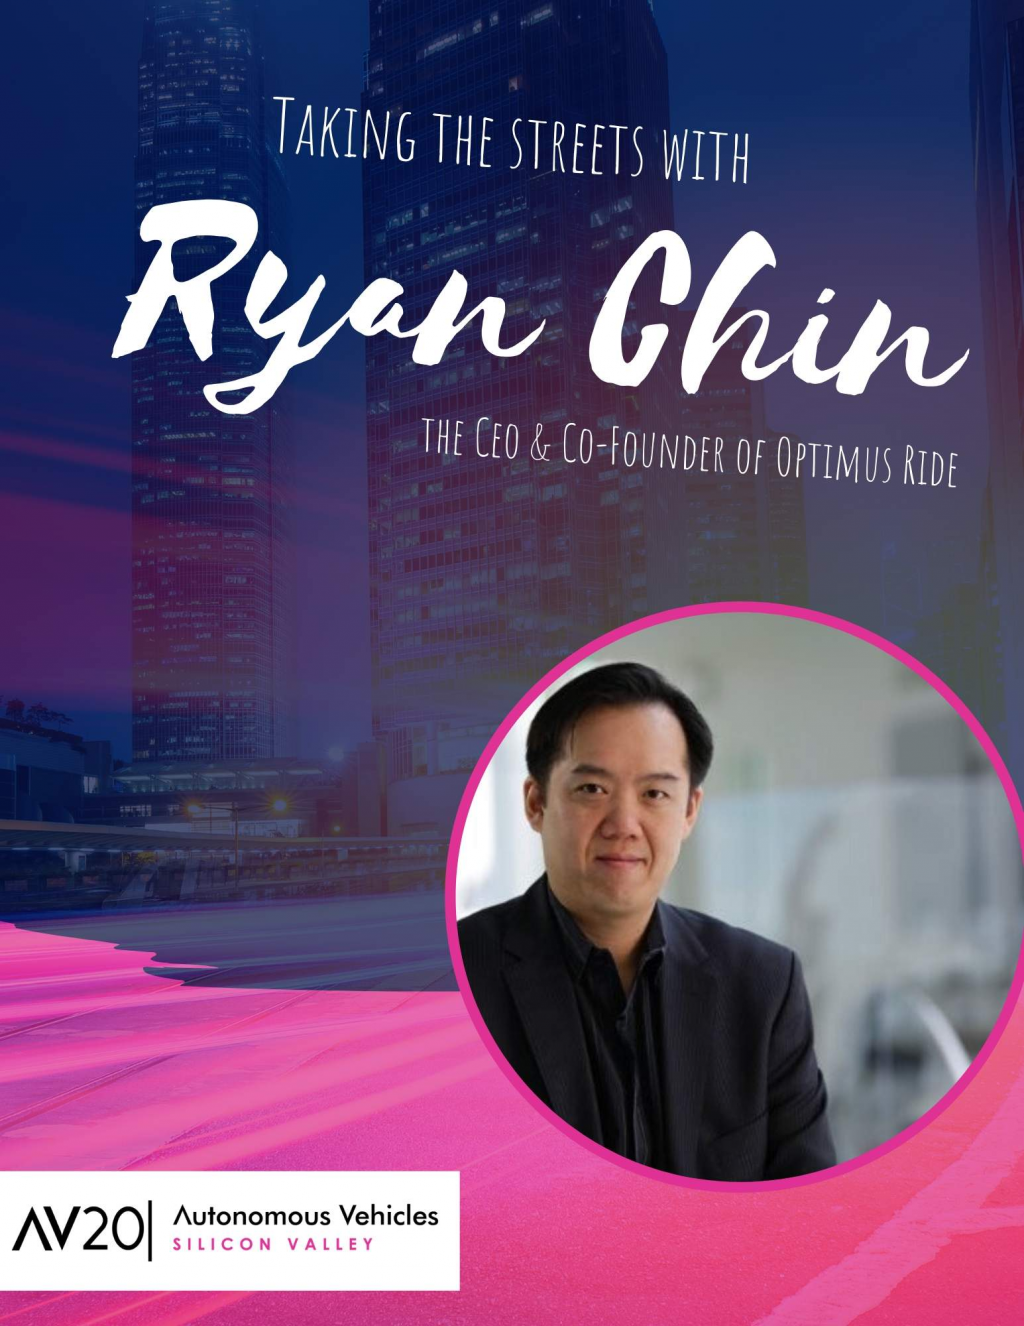 Taking the Streets with Dr. Ryan Chin